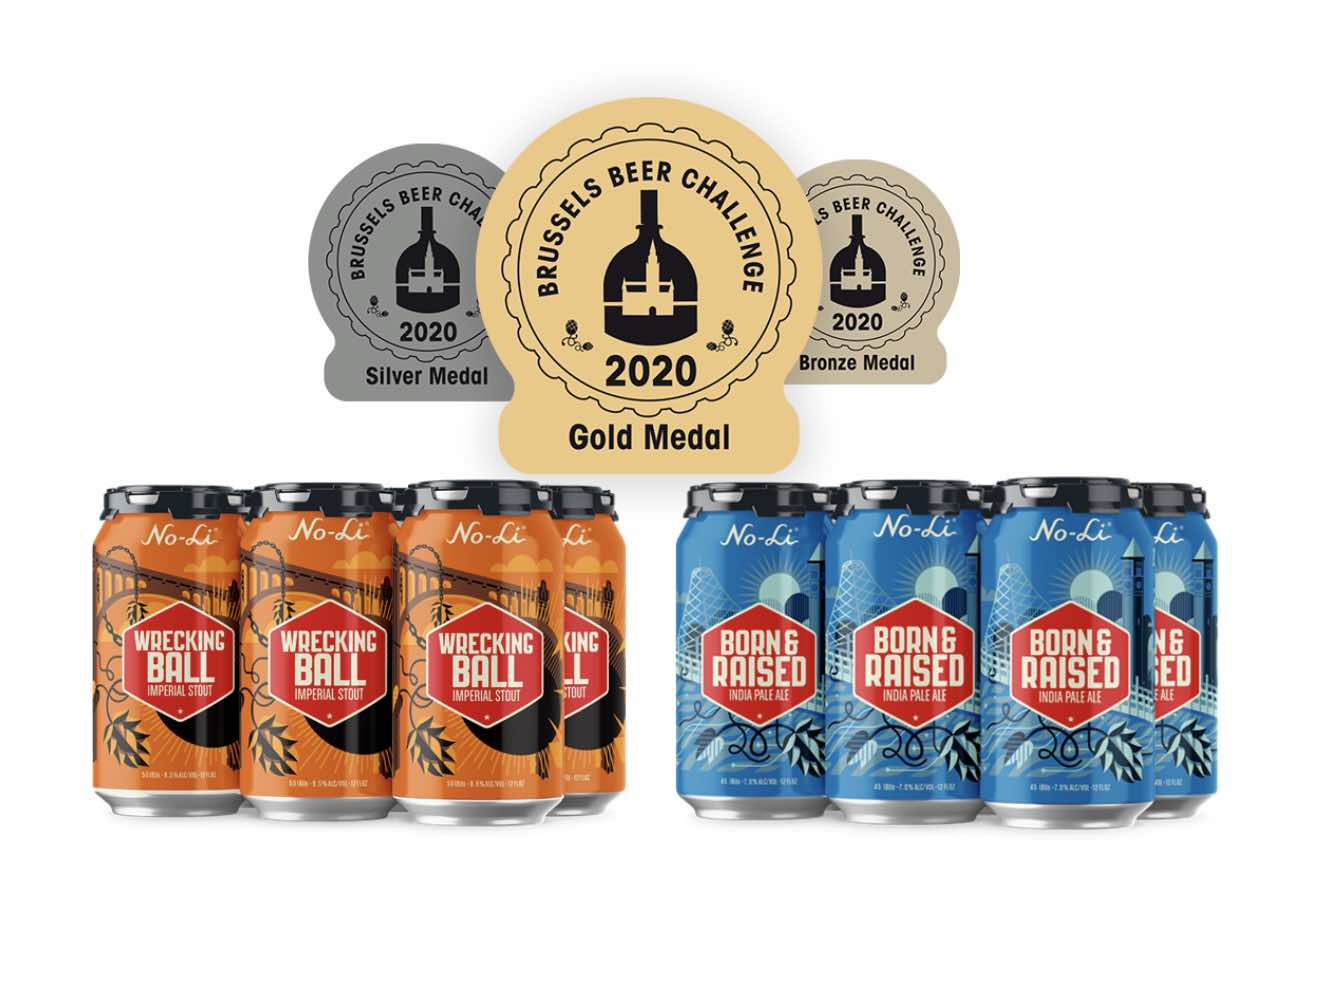 No-Li Brewhoust was awarded Gold Medals at the 2020 Brussels Beer Challenge for Born & Raised IPA and Wrecking Ball Imperial Stout